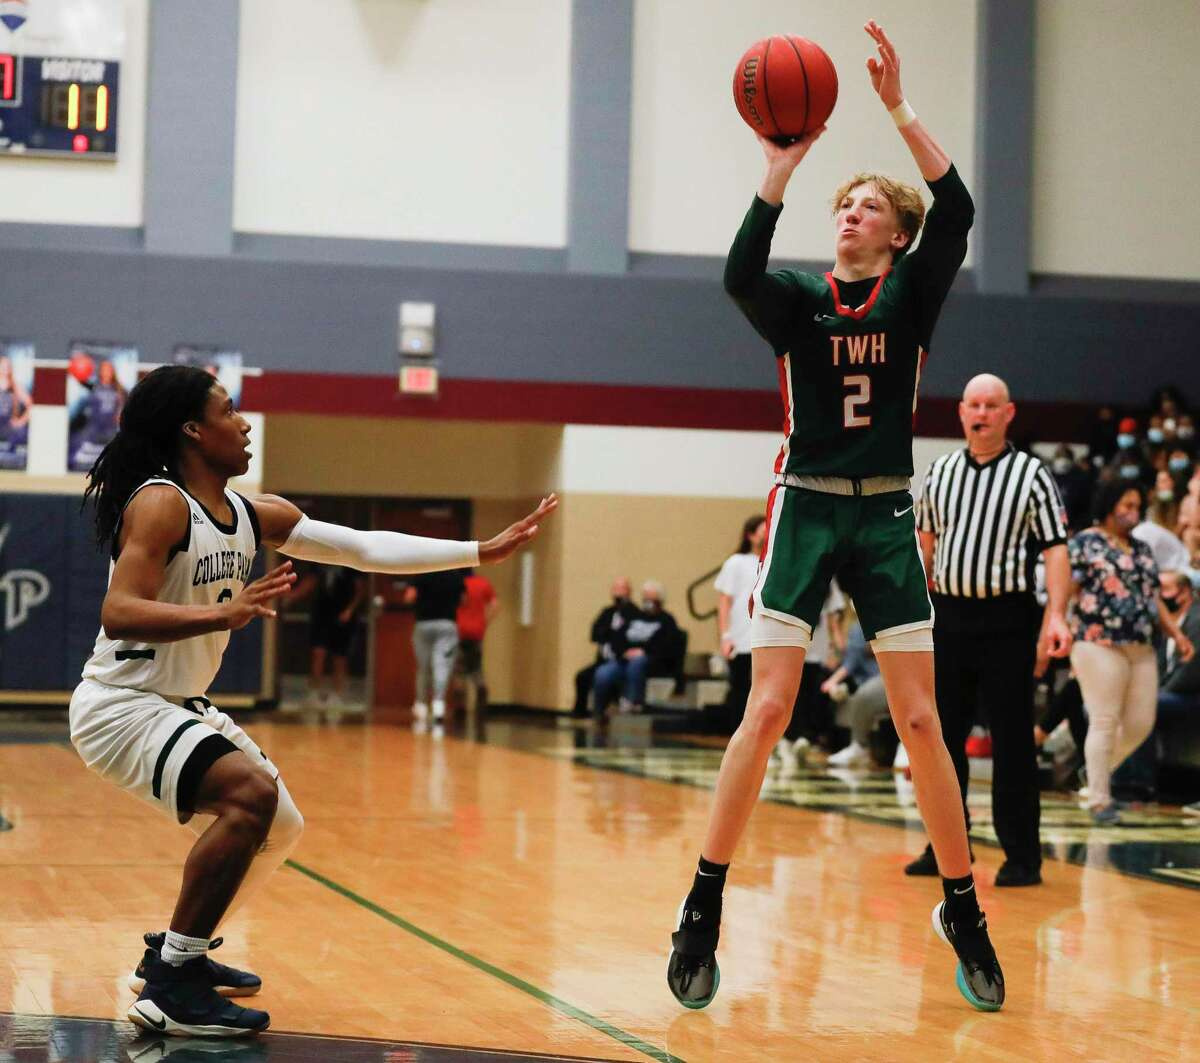 The Woodlands guard Shey Eberwein (2) shoots a 3-pointer during the first quarter of a District 15-6A high school basketball game at College Park High School, Saturday, Jan. 23, 2021, in The Woodlands.